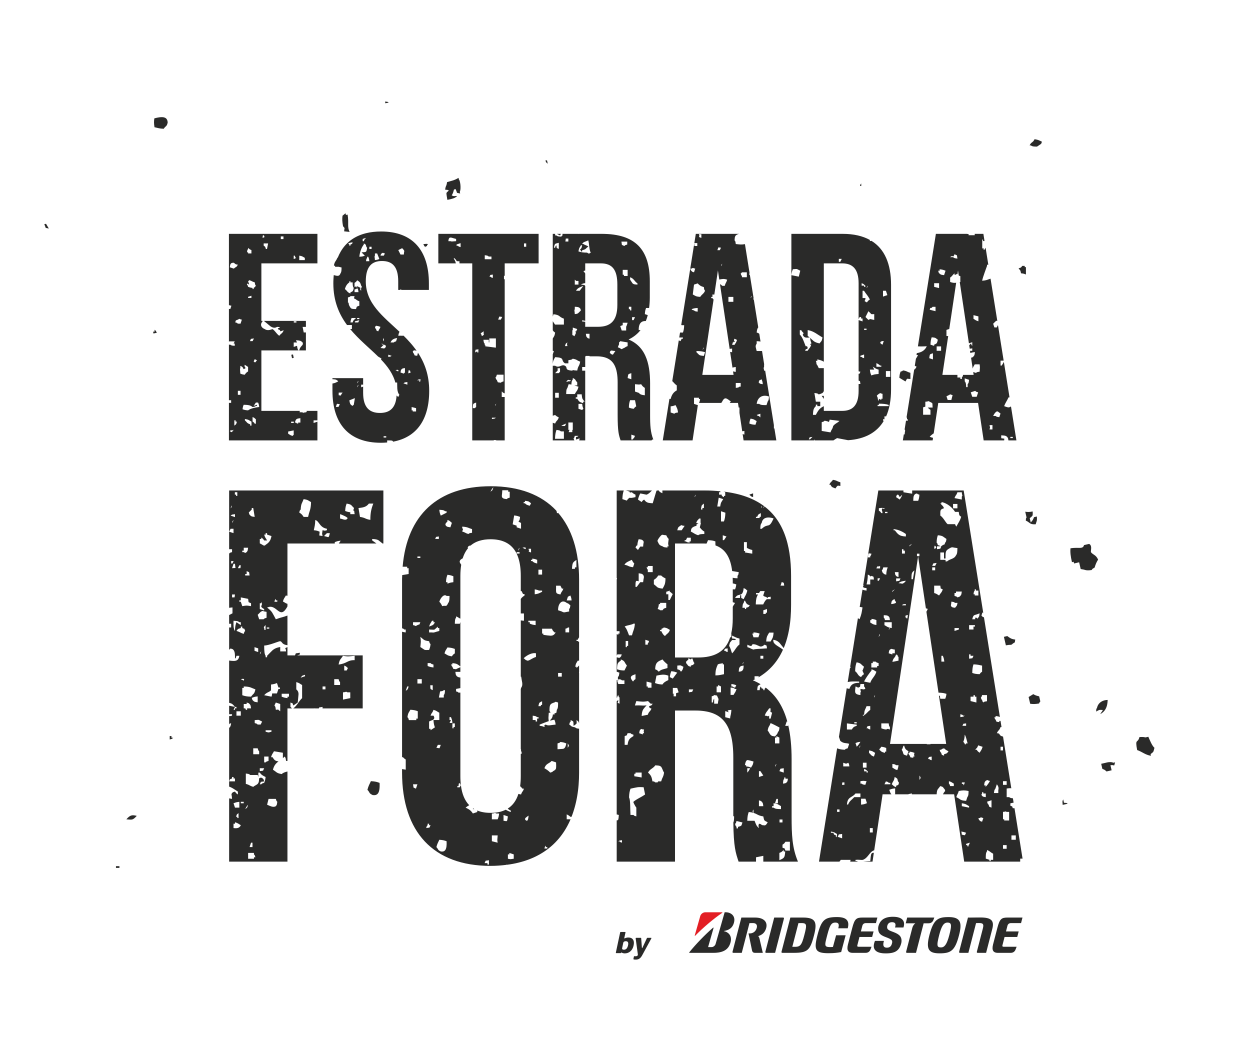 Estrada Fora by BS